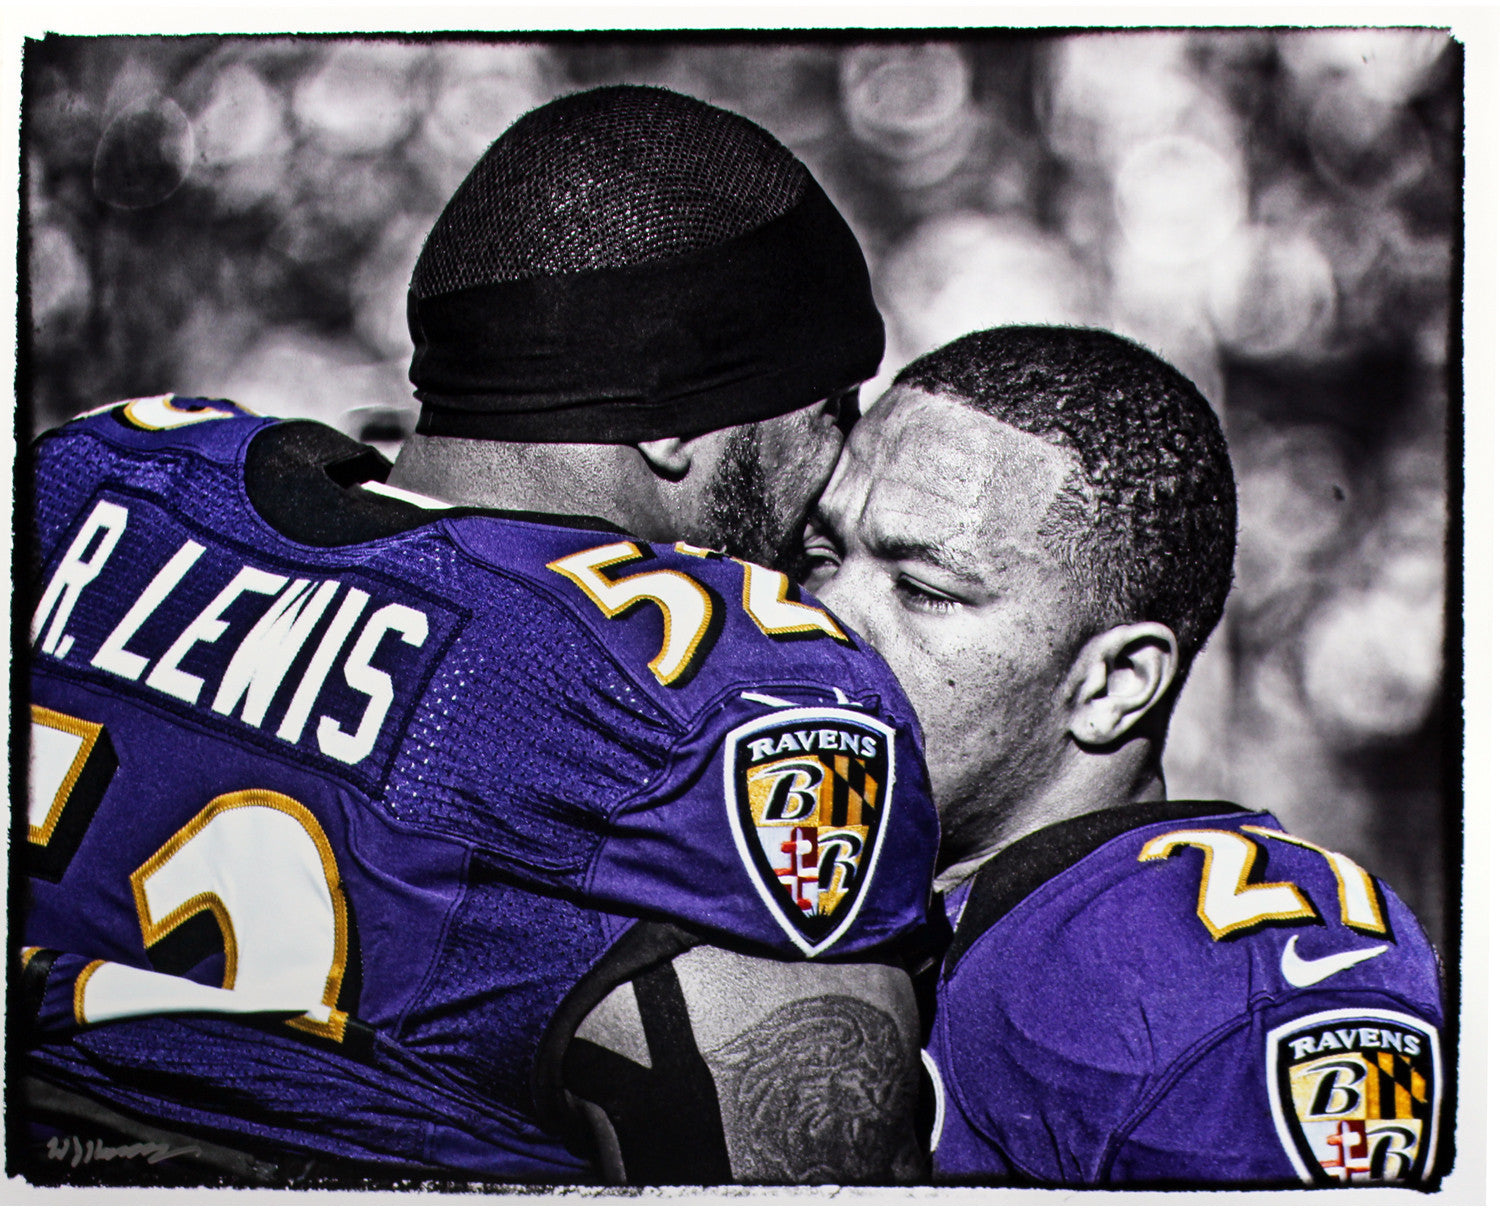 Ray Lewis and Ray Rice B W with Color Accents Hugging 16x20 Uns Hauser  Photo (Signed by William Hauser) ... 6846674e8